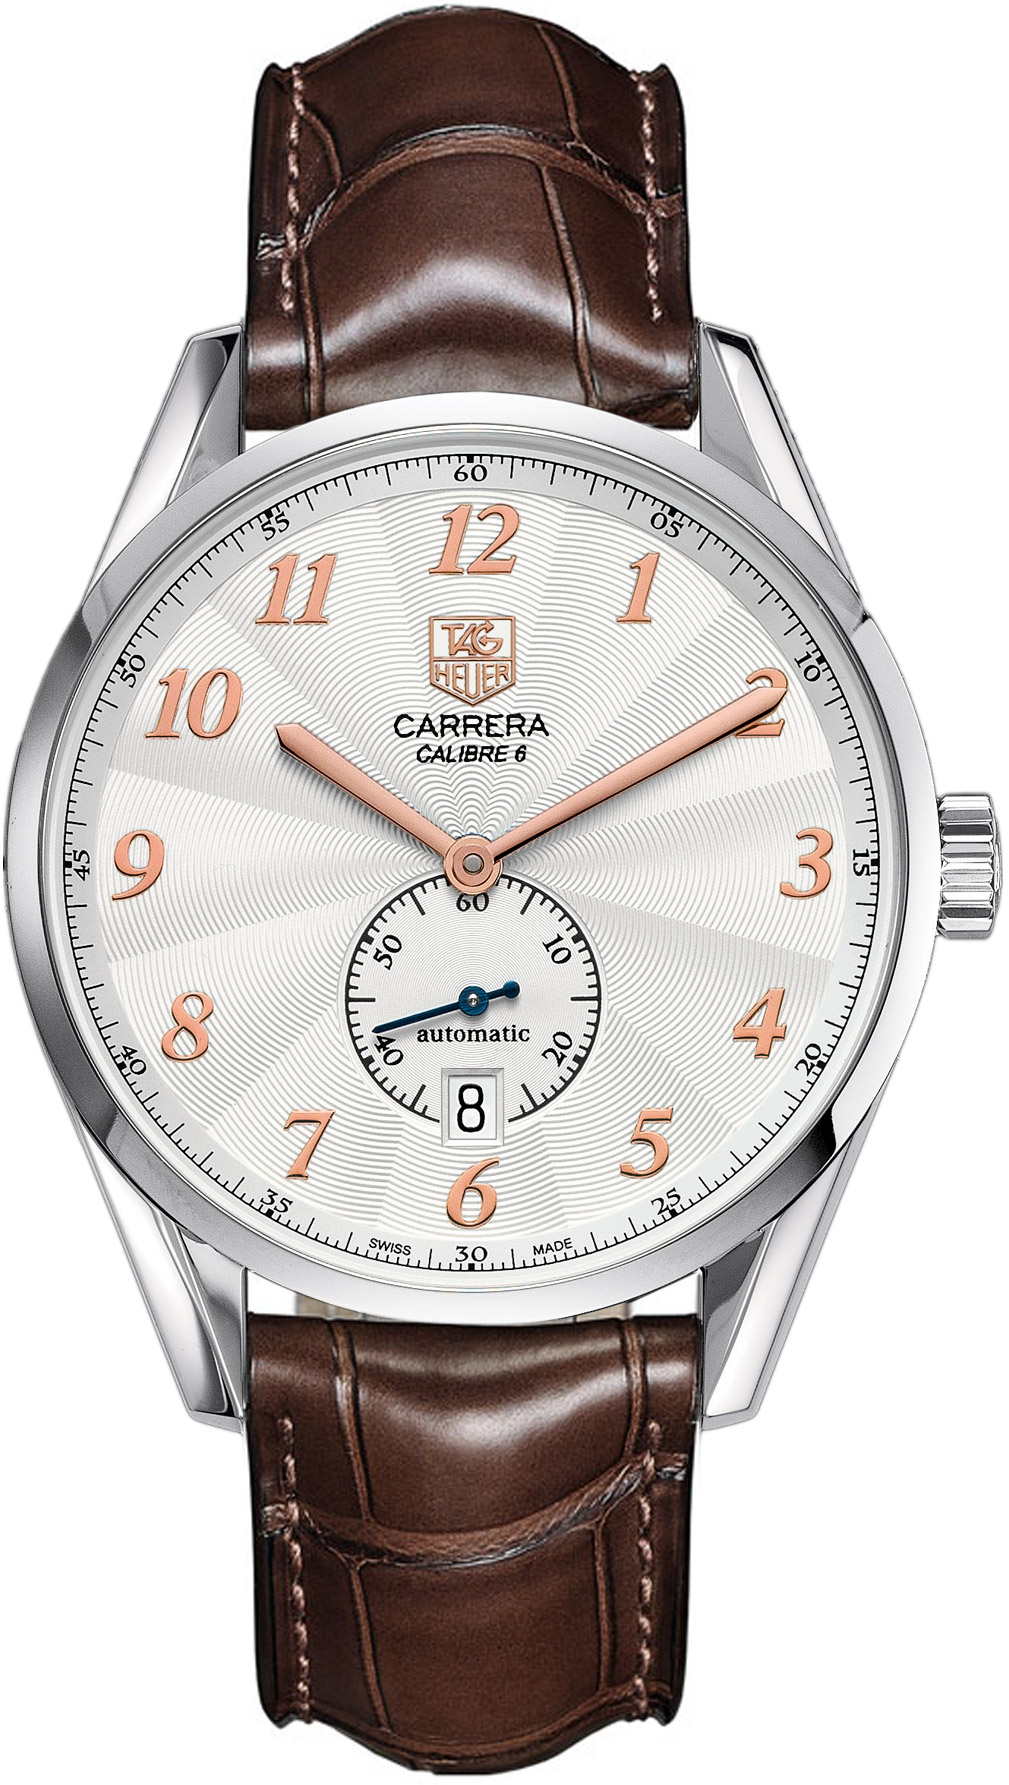 Cariera' Tag Heuer Carrera Calibre 6 Heritage Automatic 39 Men S Watch